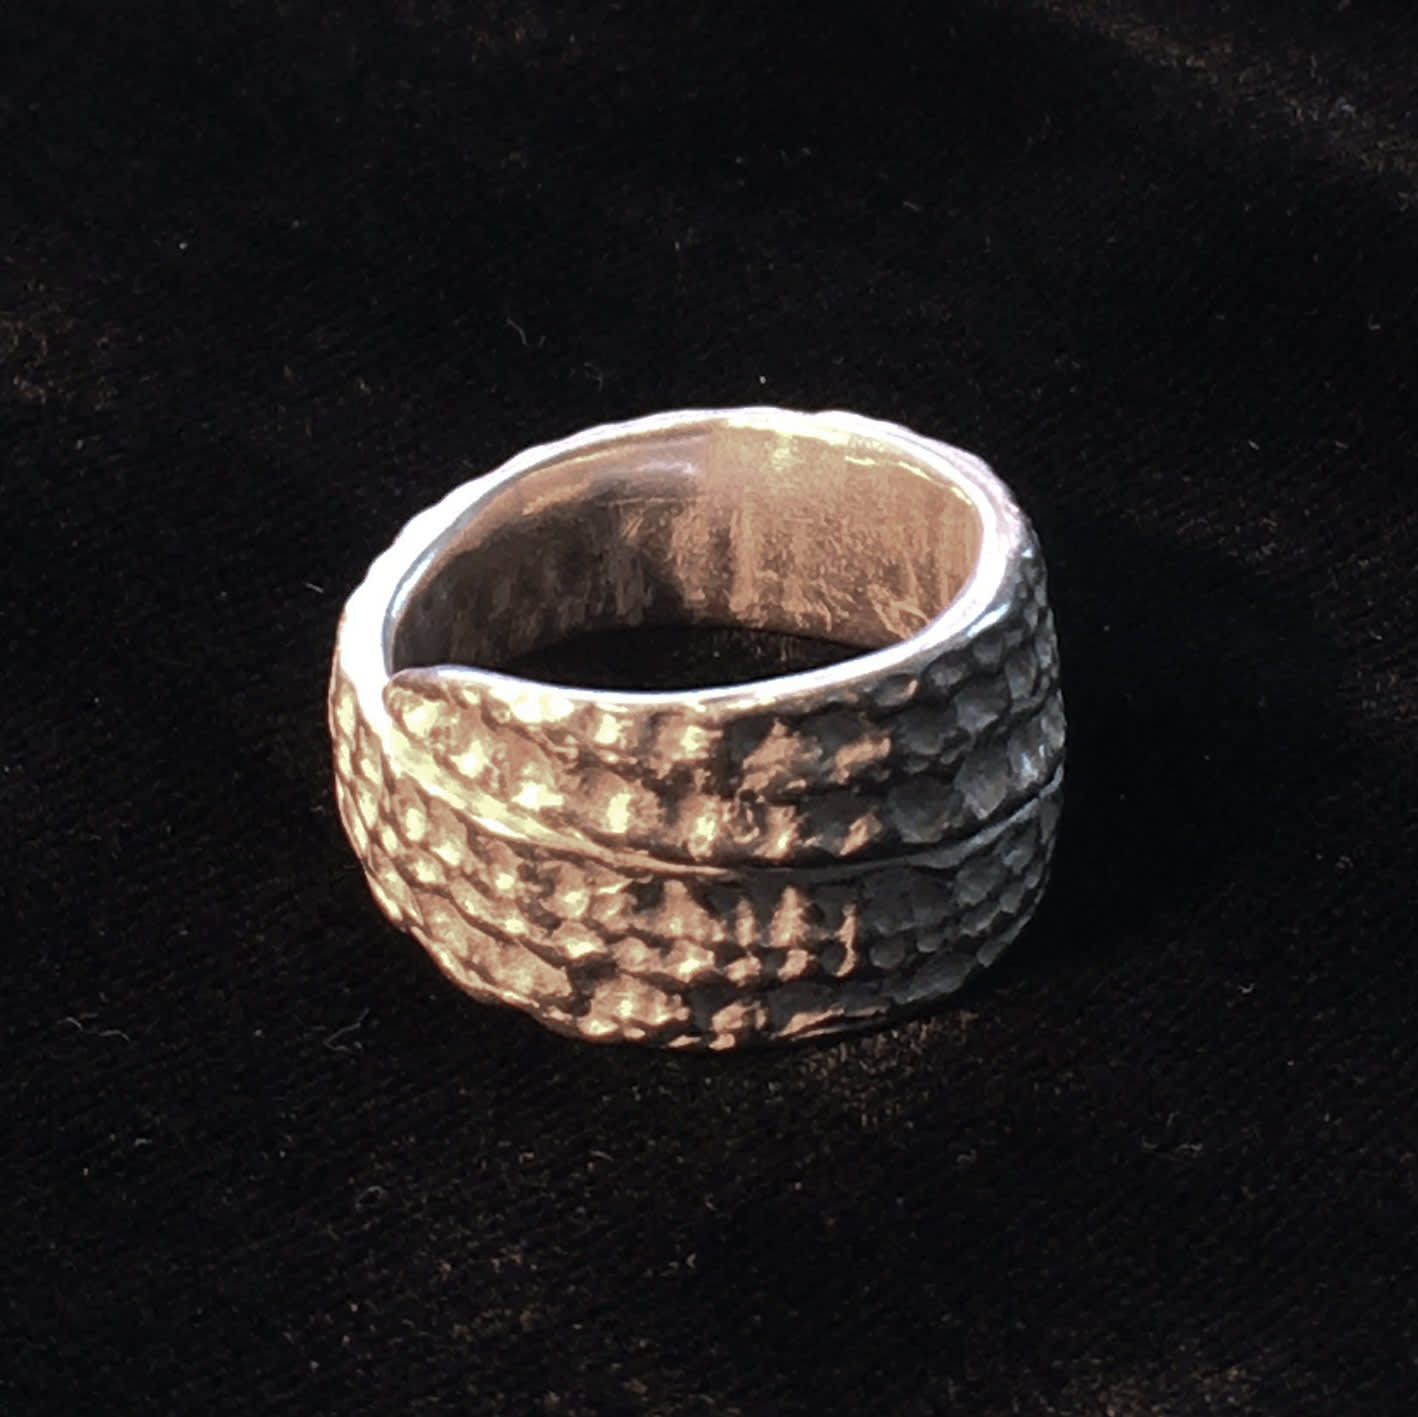 "<span class=""link fancybox-details-link""><a href=""/artists/186-helen-feiler/works/6755-helen-feiler-silver-shell-ring-wide-2019/"">View Detail Page</a></span><div class=""artist""><strong>Helen Feiler</strong></div> <div class=""title""><em>Silver 'Shell' Ring - wide</em>, 2019</div> <div class=""medium"">silver</div><div class=""price"">£175.00</div><div class=""copyright_line"">Own Art: £17.50 x 10 monthly payments</div>"